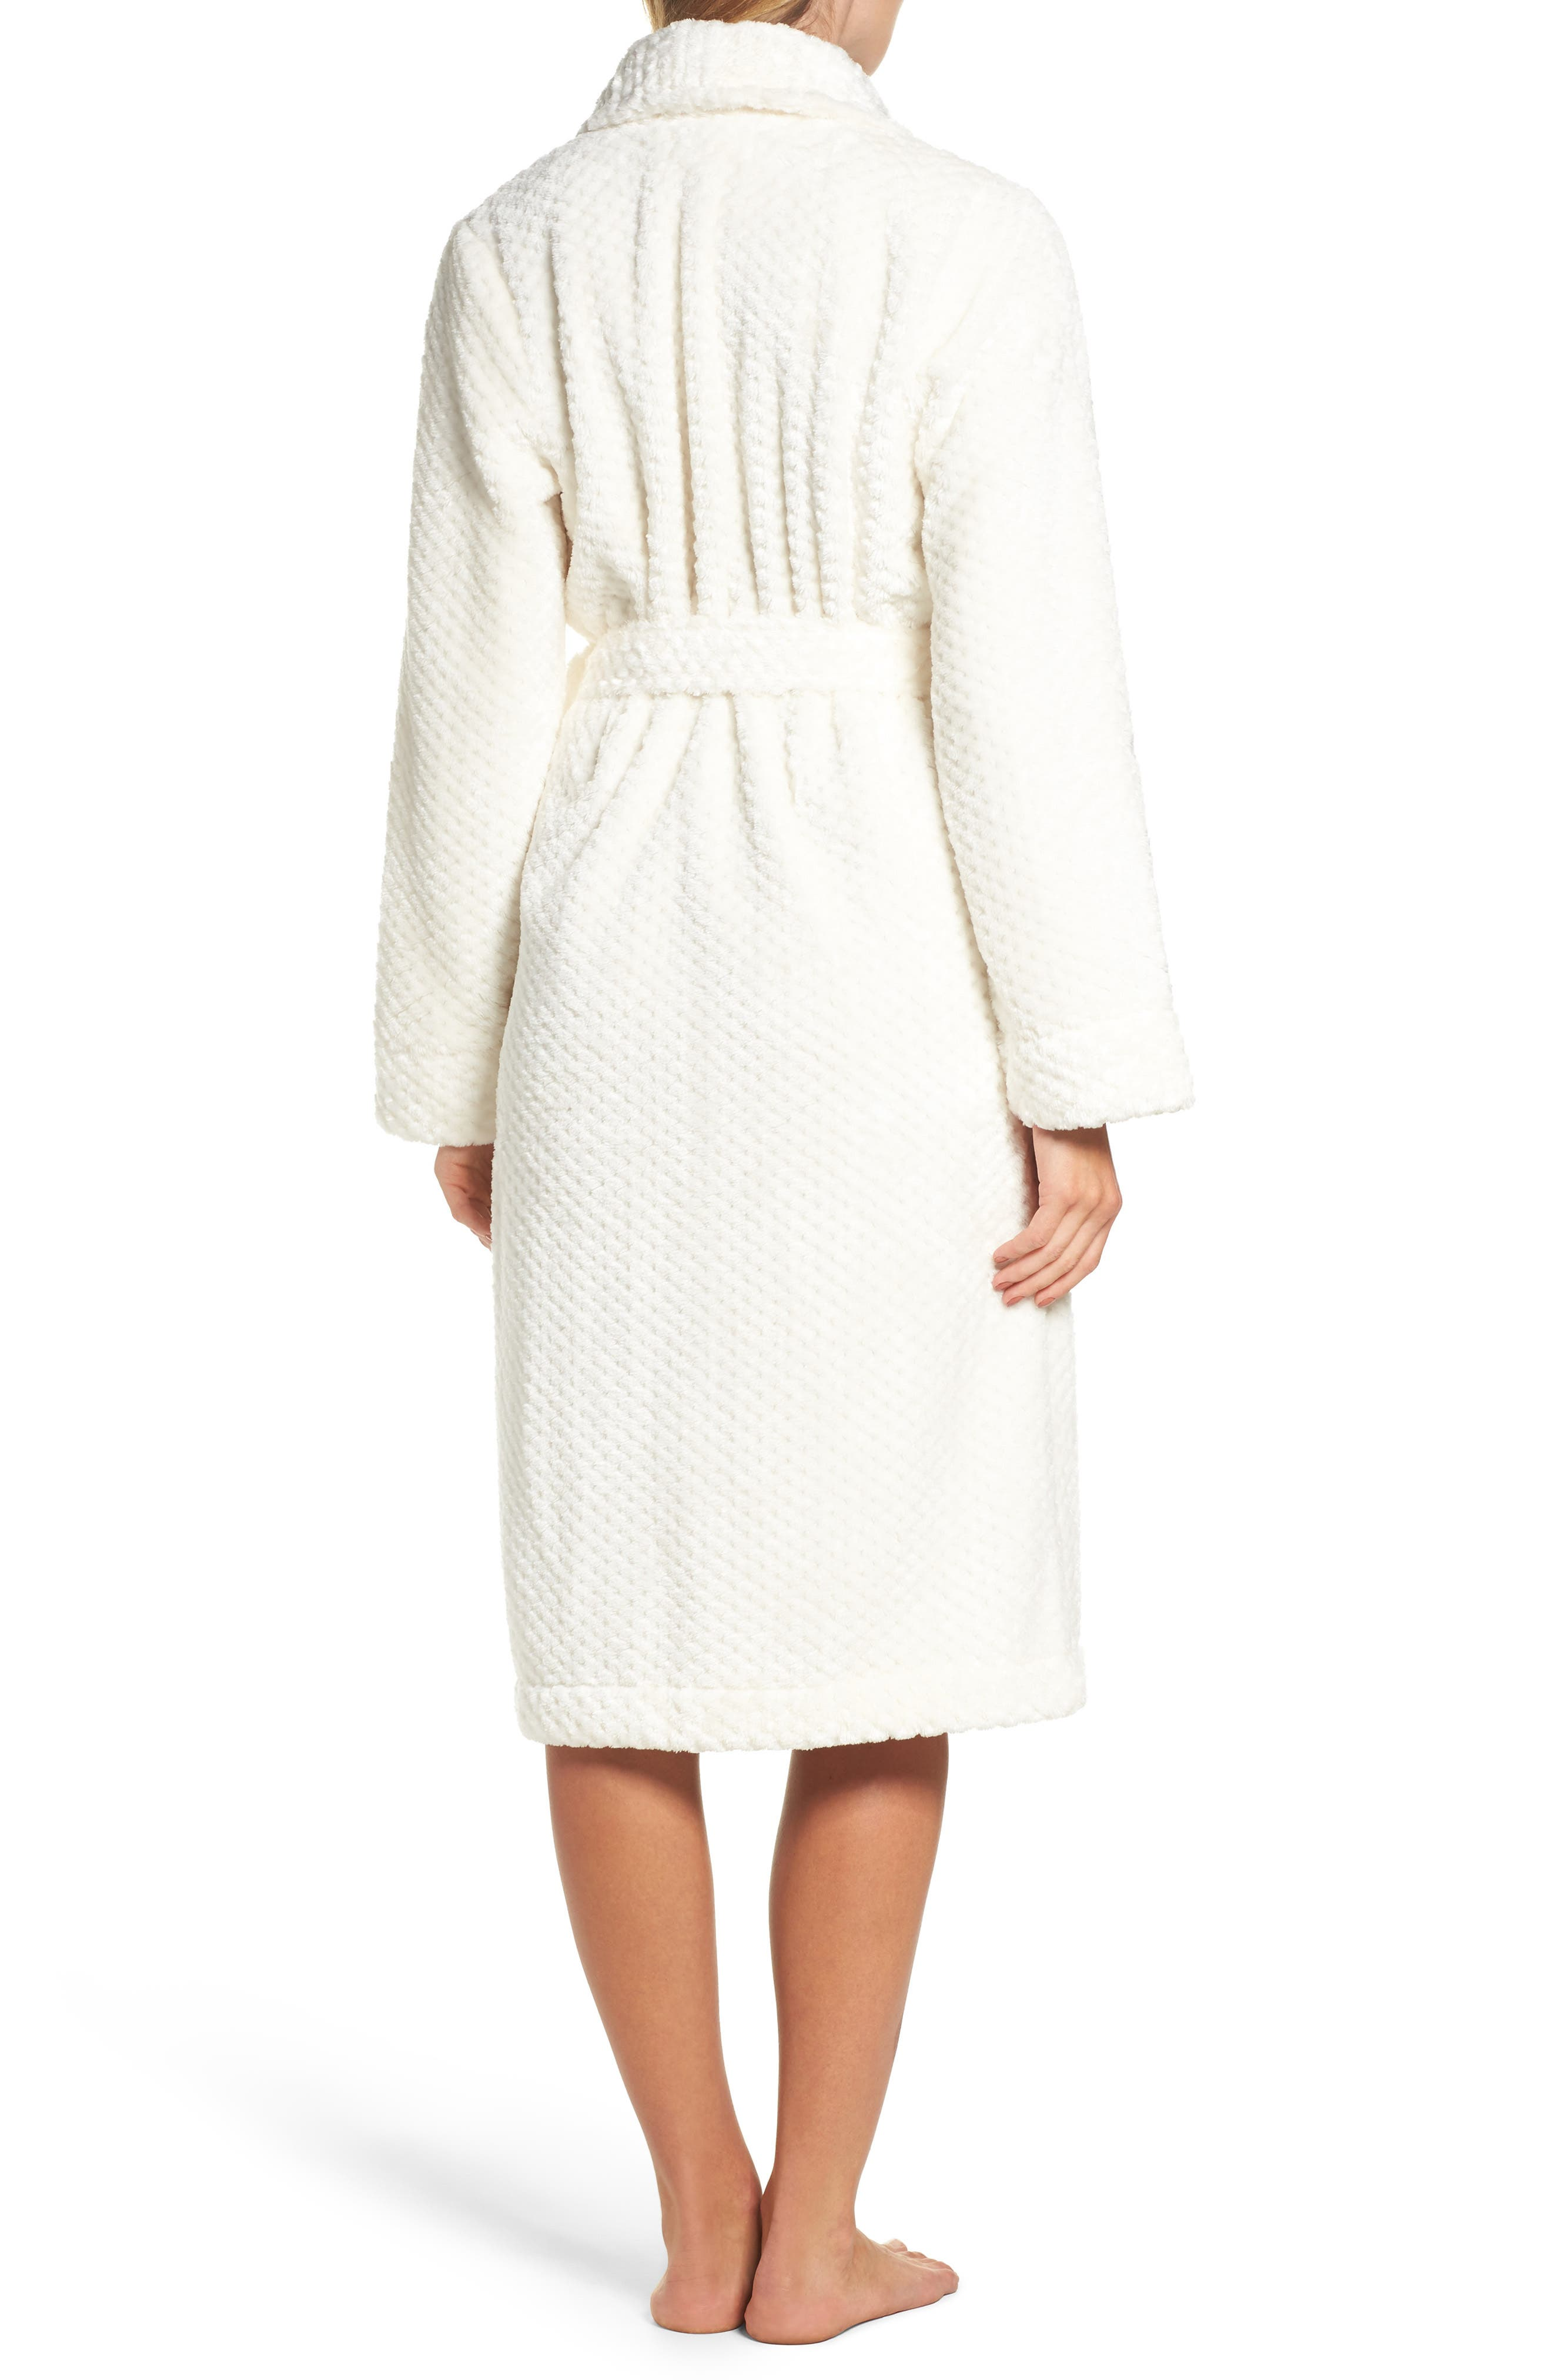 Nordstrom So Soft Plush Robe,                             Alternate thumbnail 2, color,                             Ivory Egret